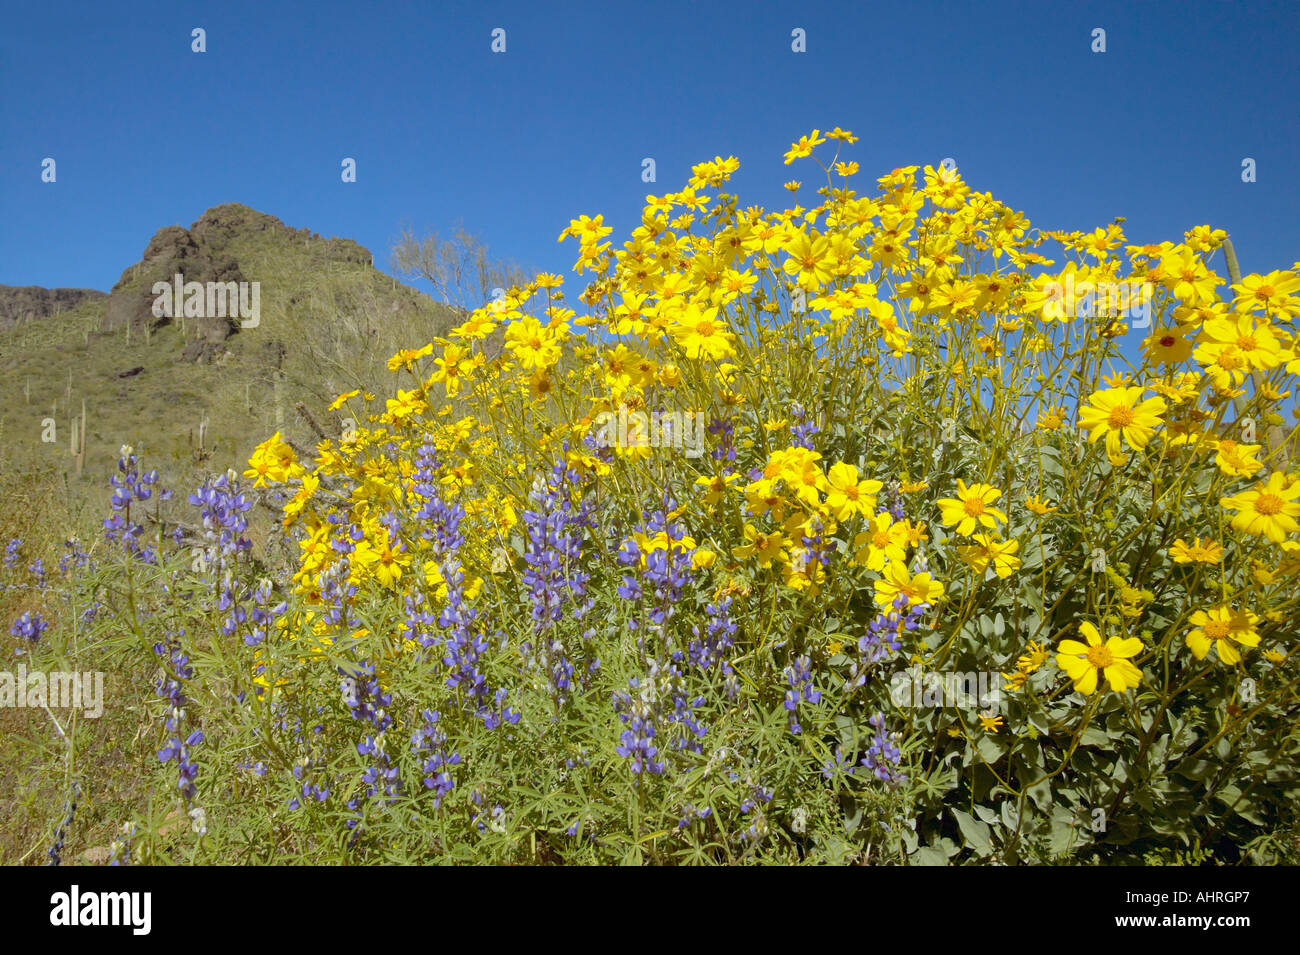 Yellow and purple desert flowers blossoming in spring at picacho yellow and purple desert flowers blossoming in spring at picacho peak state park north of tucson az mightylinksfo